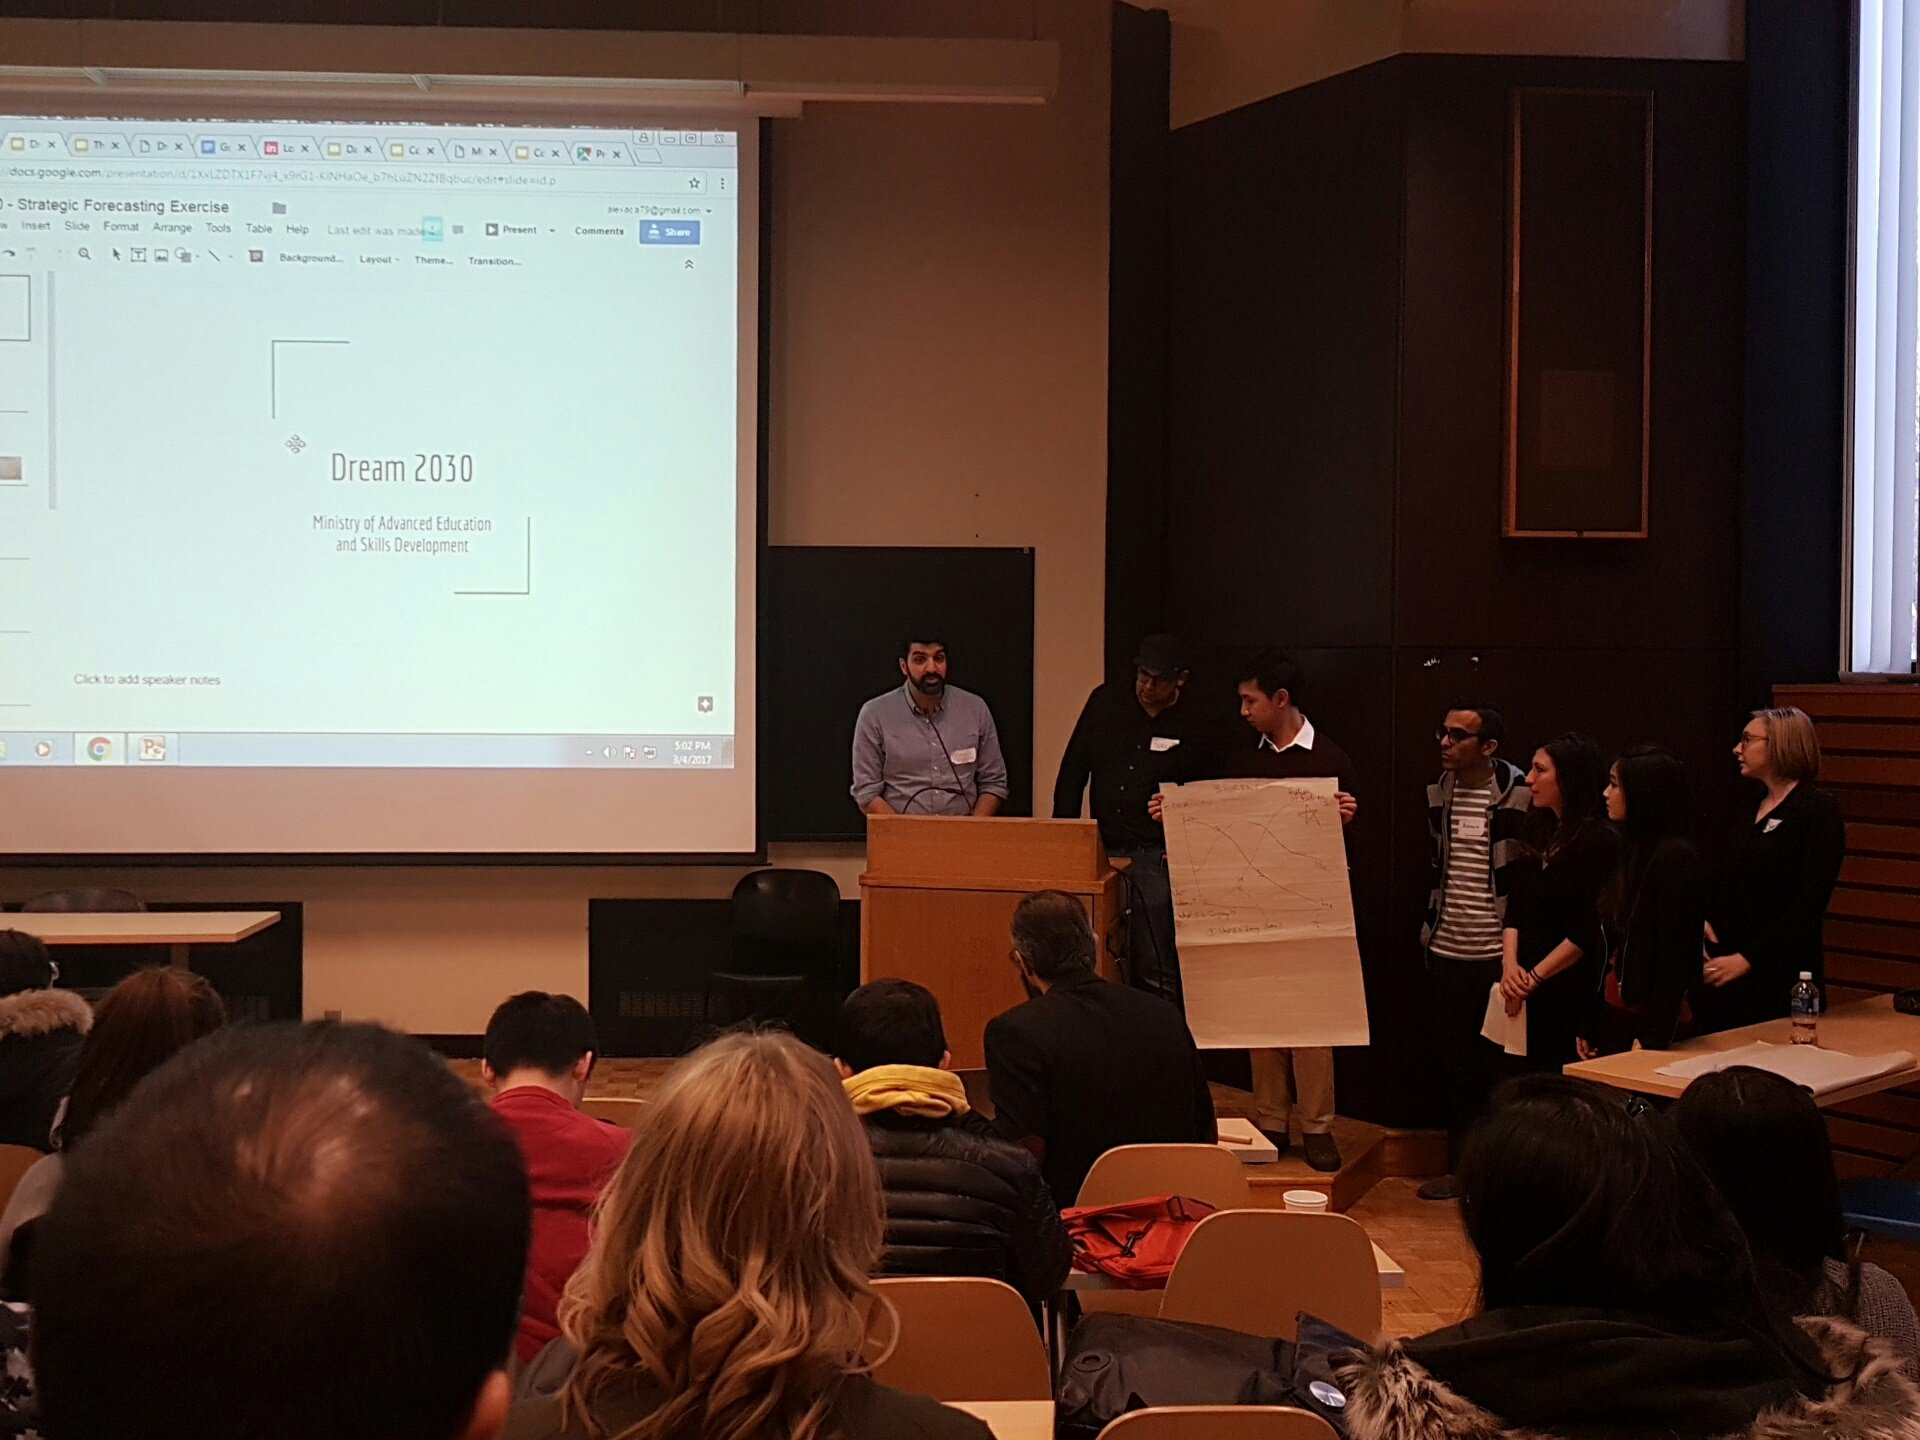 Pitched at #CodeAcrossTO: Envisioning a transformation of the post-secondary education system. #dream2030 #onpoli https://t.co/JapzH91keT